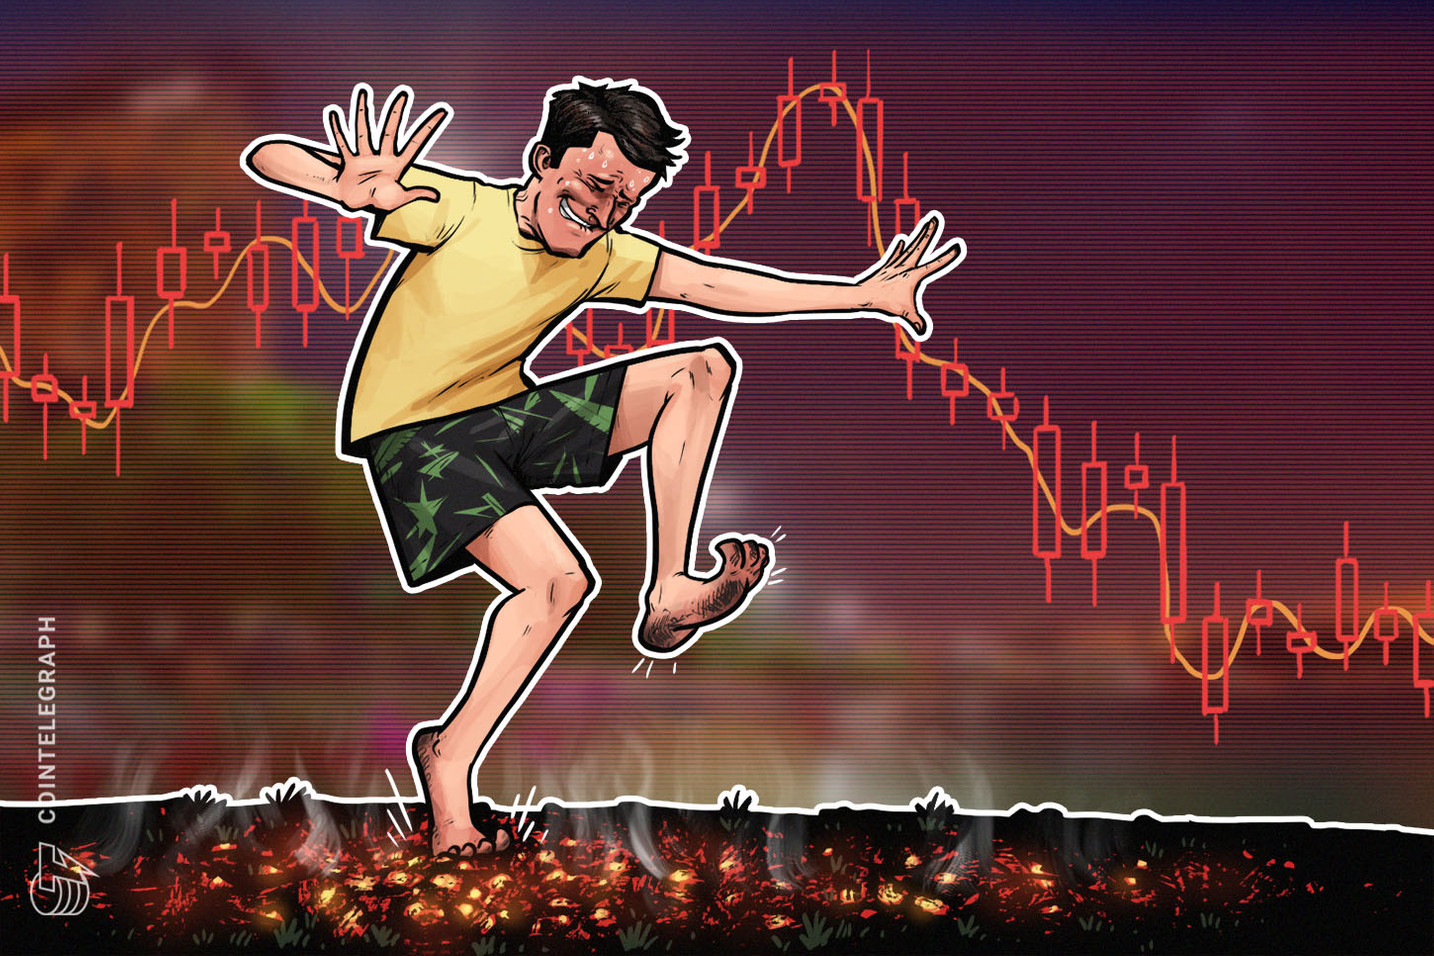 Crypto Markets Descending, With Bitcoin Price Sinking Below $10,200